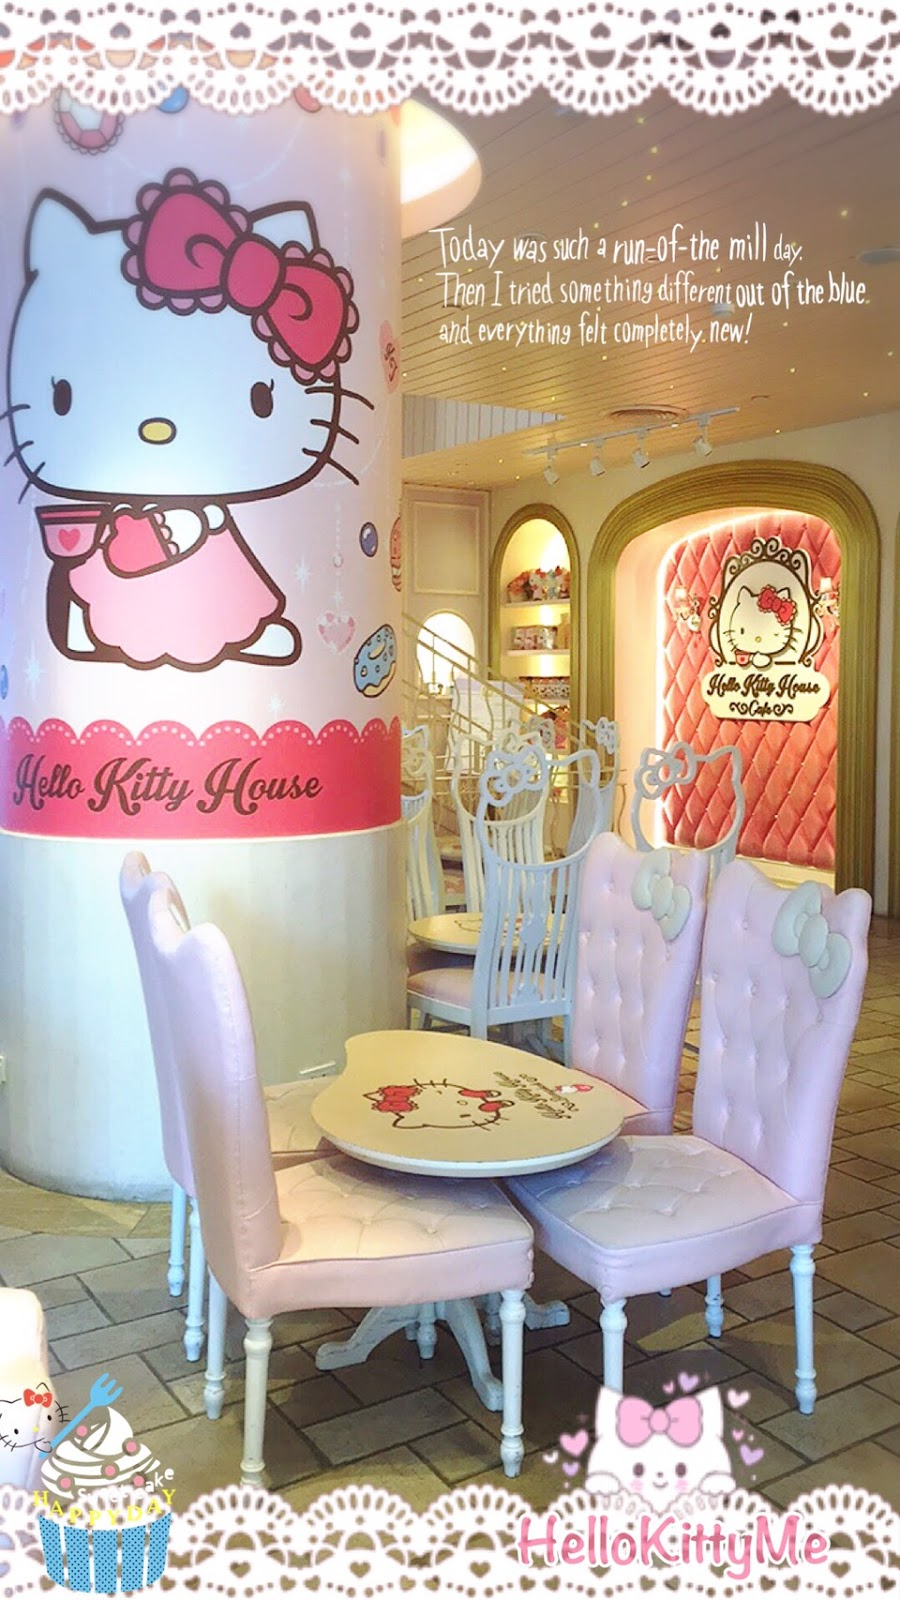 Treat Yourself To Yummy Confections And Sweets That Are Just Too Cutesy Eat Pamper Luxurious Hello Kitty Spa Services Shop